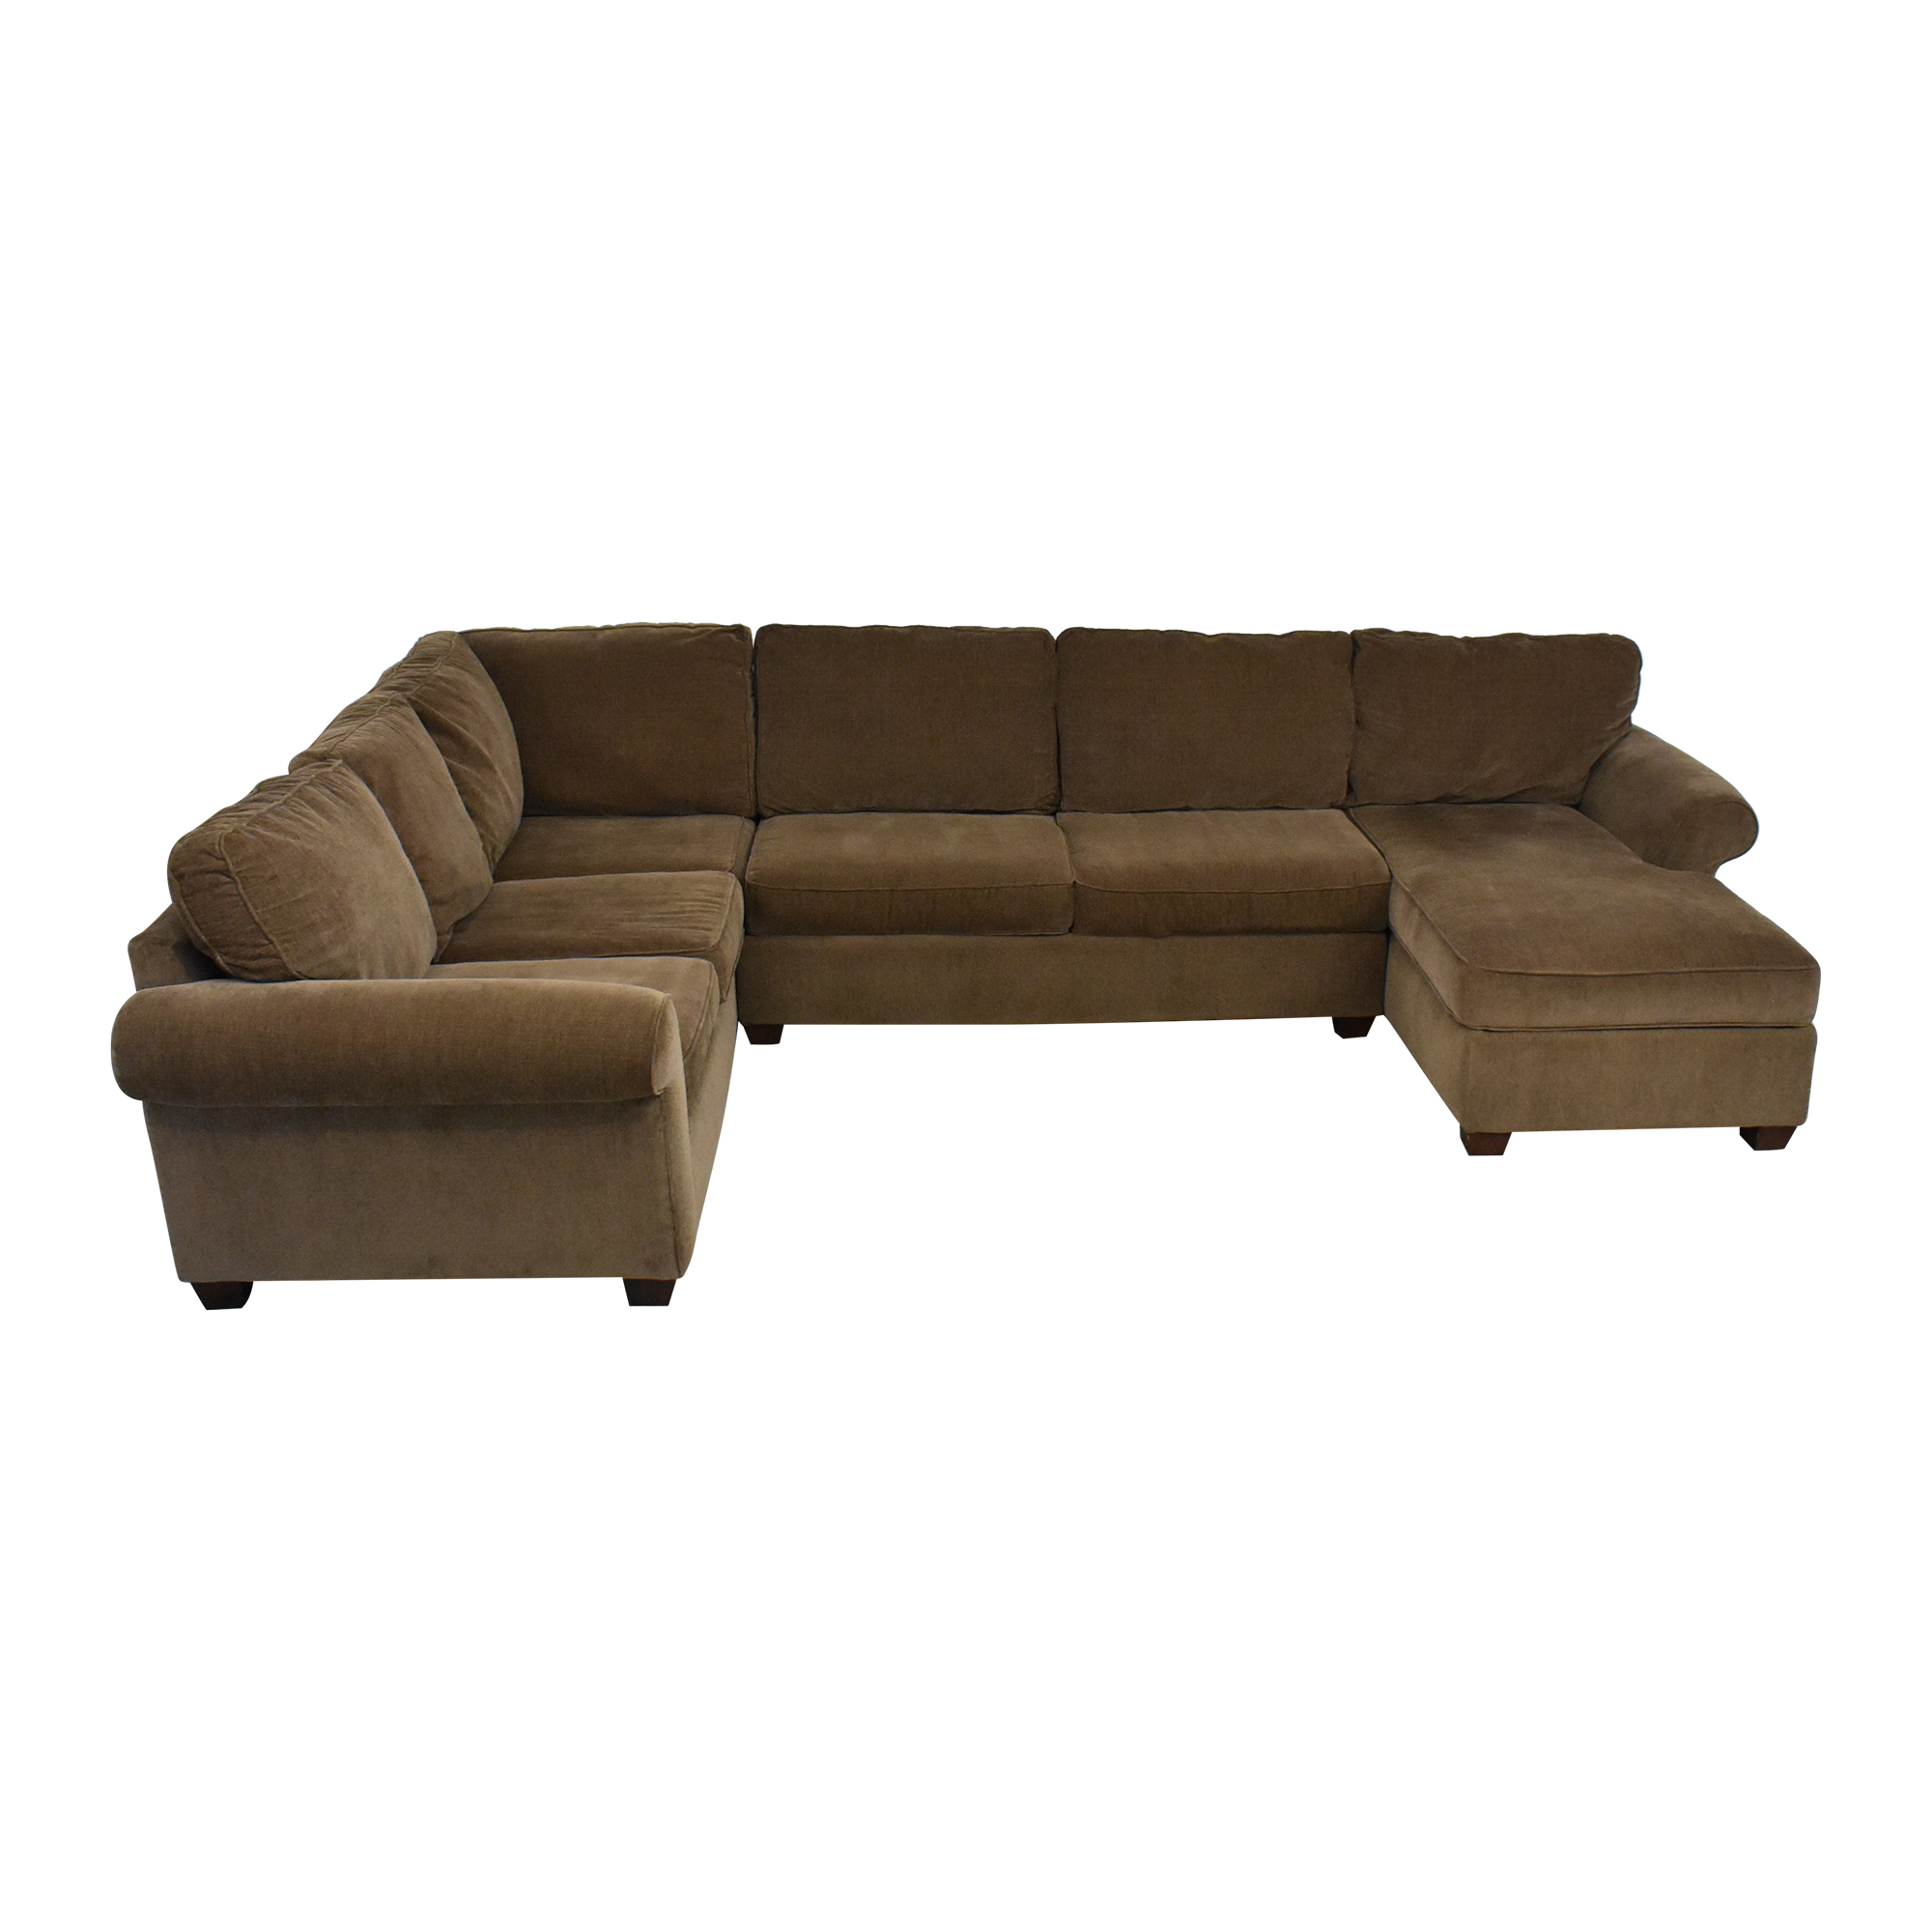 buy Raymour & Flanigan Sectional Sofa with Chaise Raymour & Flanigan